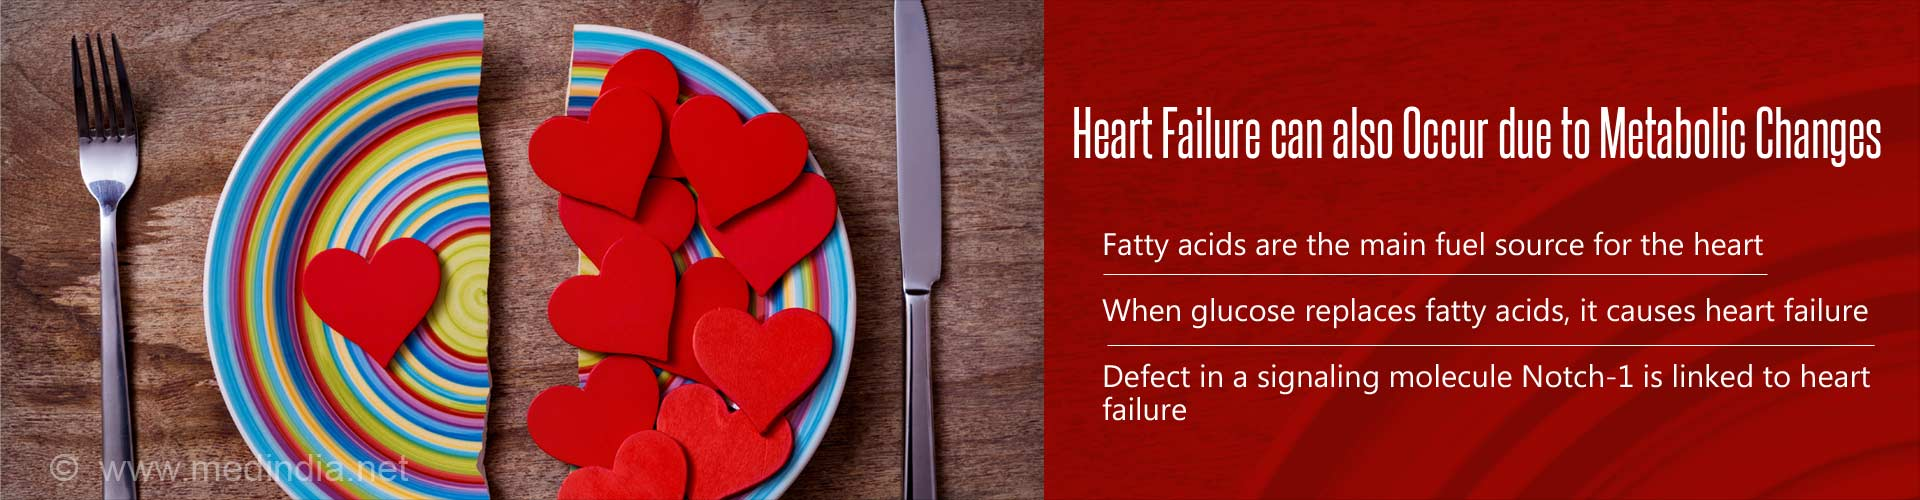 Defect in Fatty Acid Signaling Molecule Can Cause Heart Failure